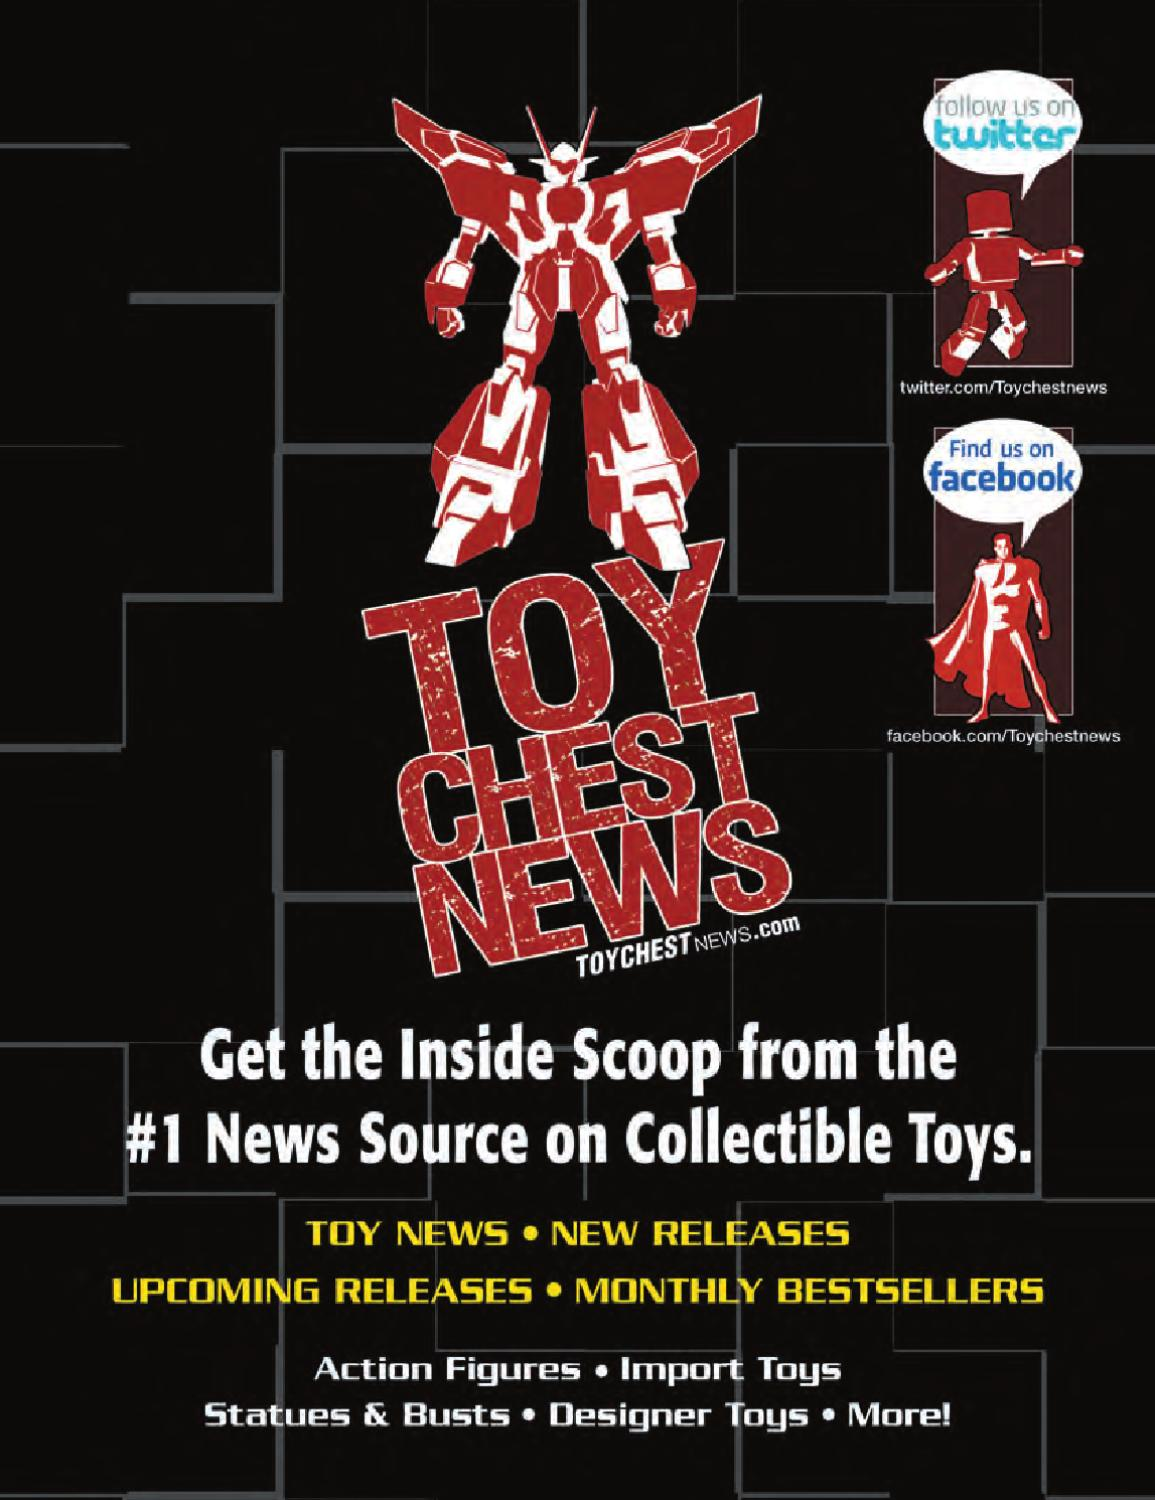 962a98e94 PREVIEWS USA LUGLIO 2012 TOYS & COLLECTIBLES by Ecomics - issuu